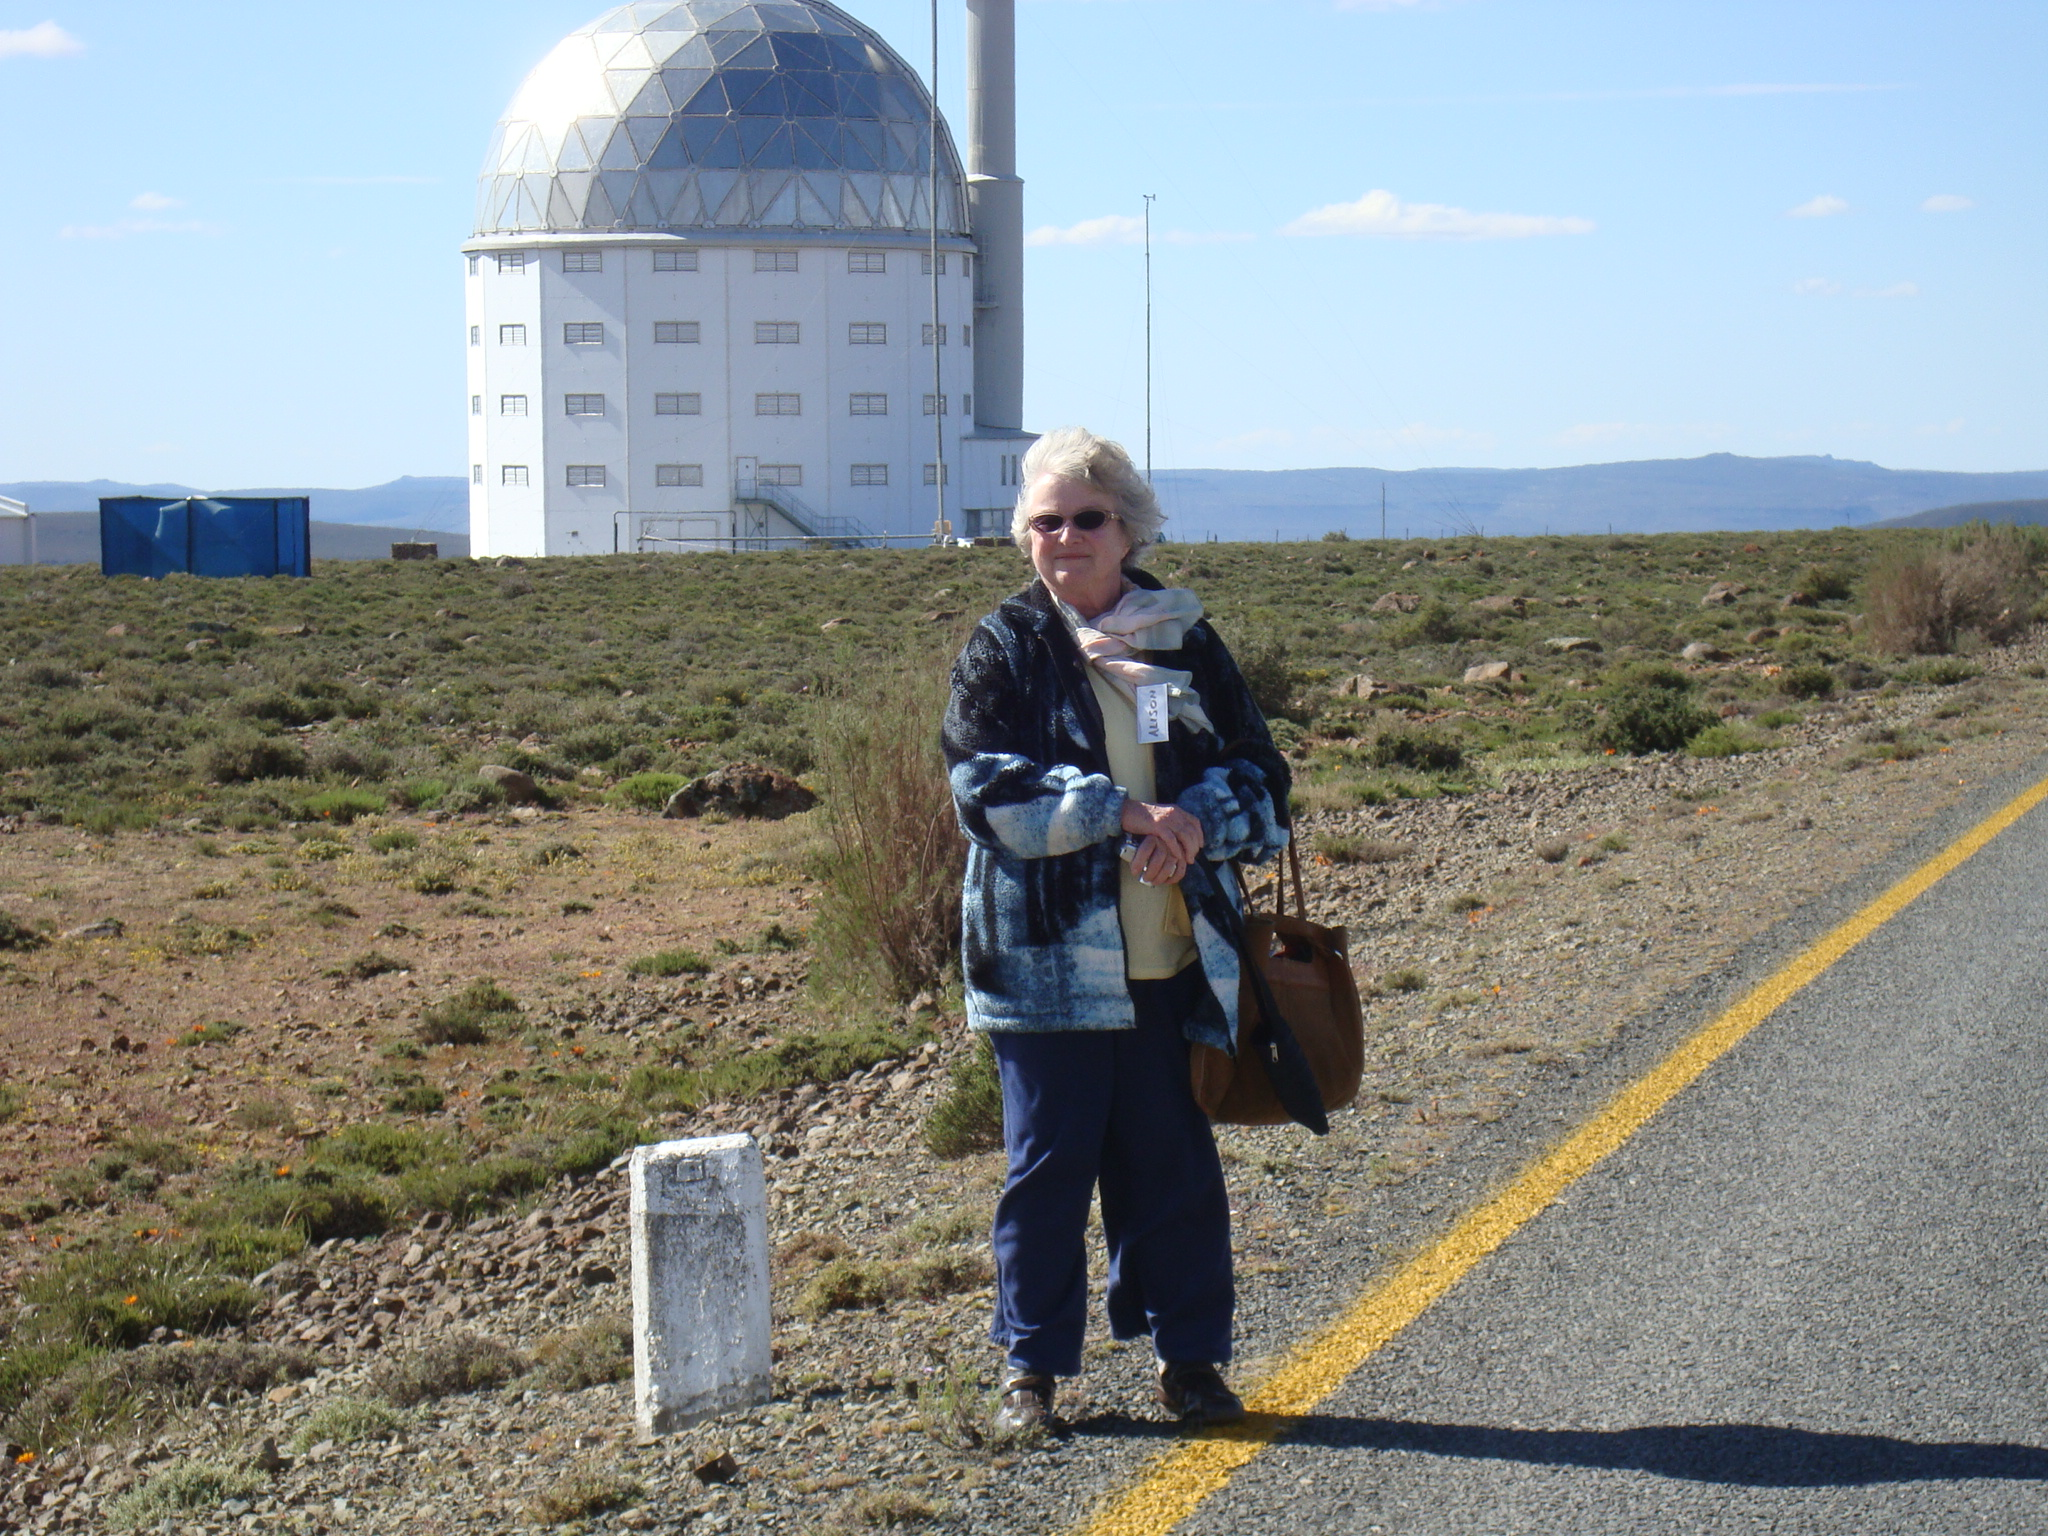 Sutherland South Africa  city images : South African Large Telescope | despatchesfromtimbuktu